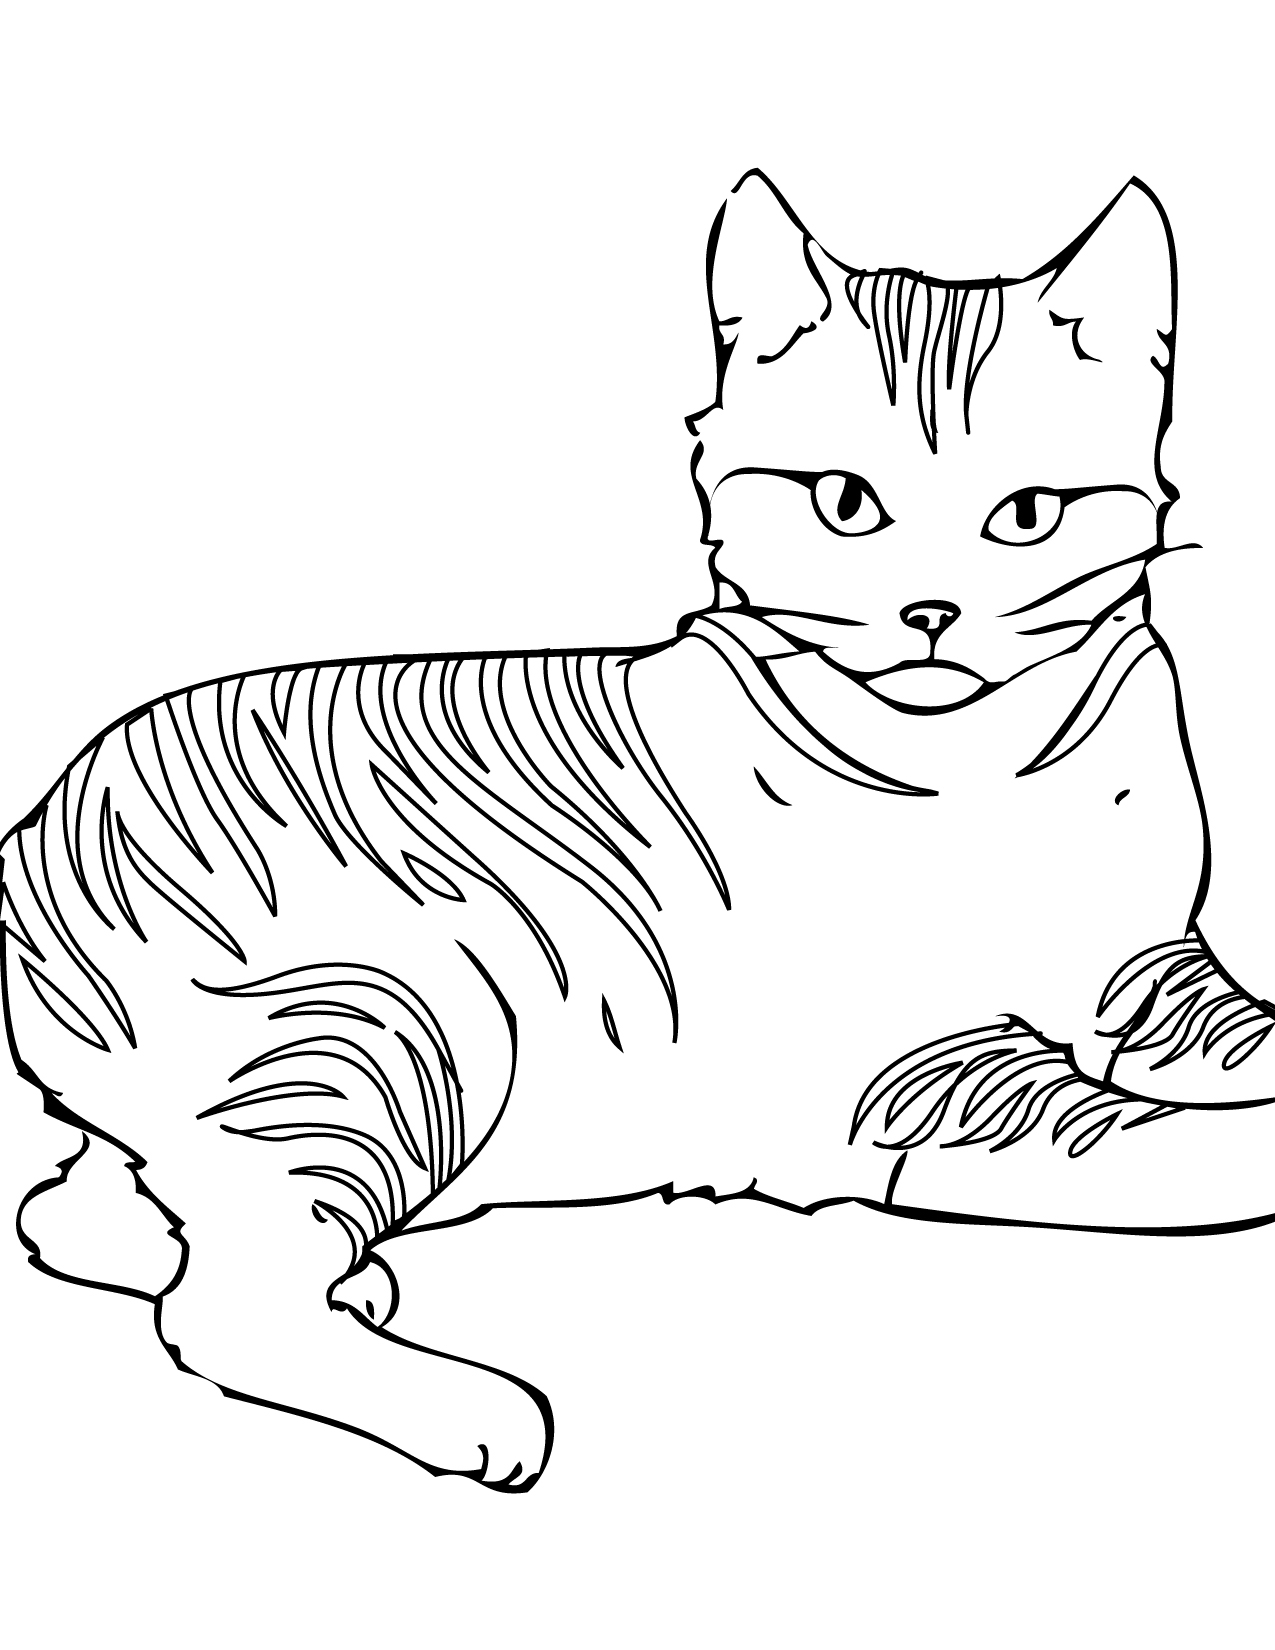 1275x1650 Opportunities Printable Pictures Of Cats Black Cat Coloring Pages